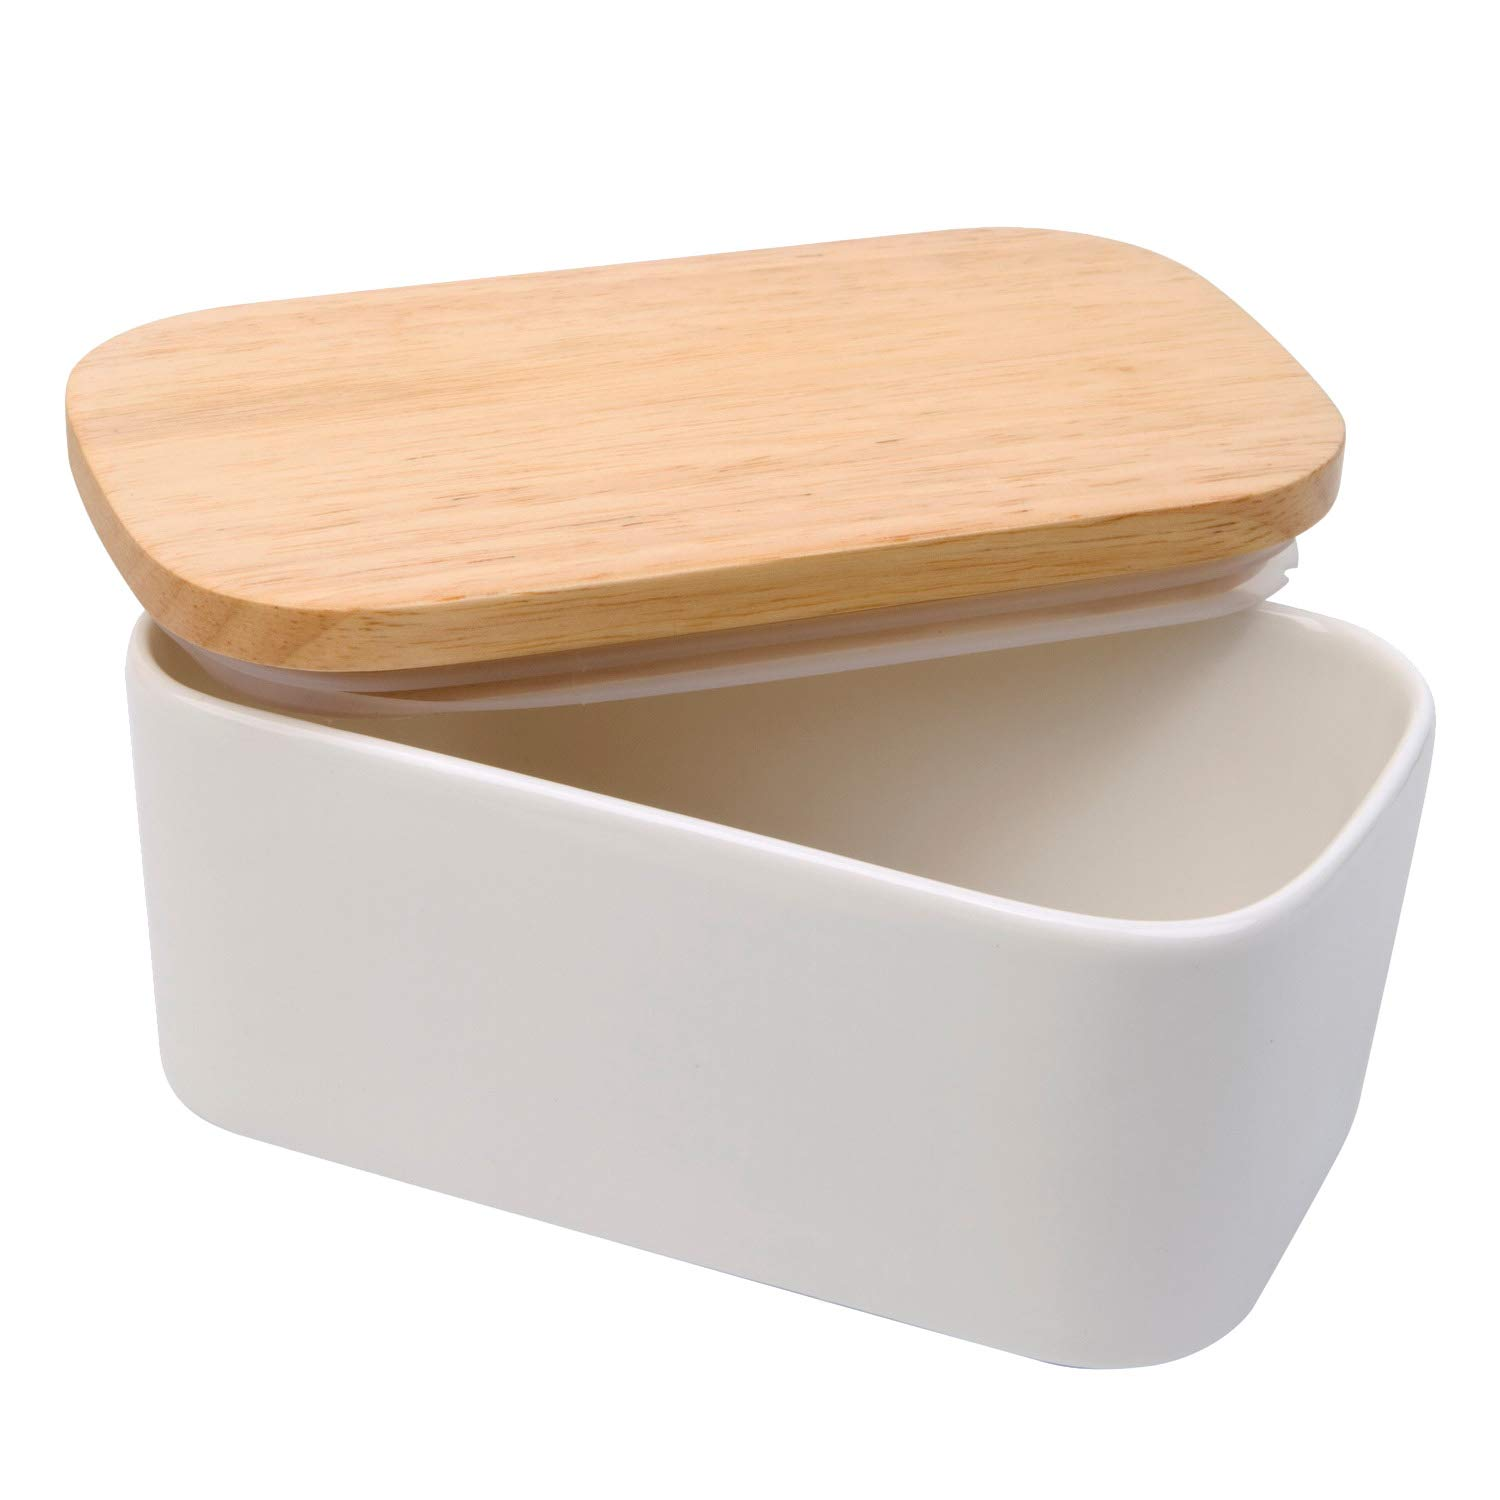 Arswin Butter Dish with Lid, LARGE 650ml Porcelain Keeper with Wood Lid Cover for 2 Sticks of Butter, Microwave Safe Easy Clean Butter Storage Container for Countertop and Refrigerator (White)